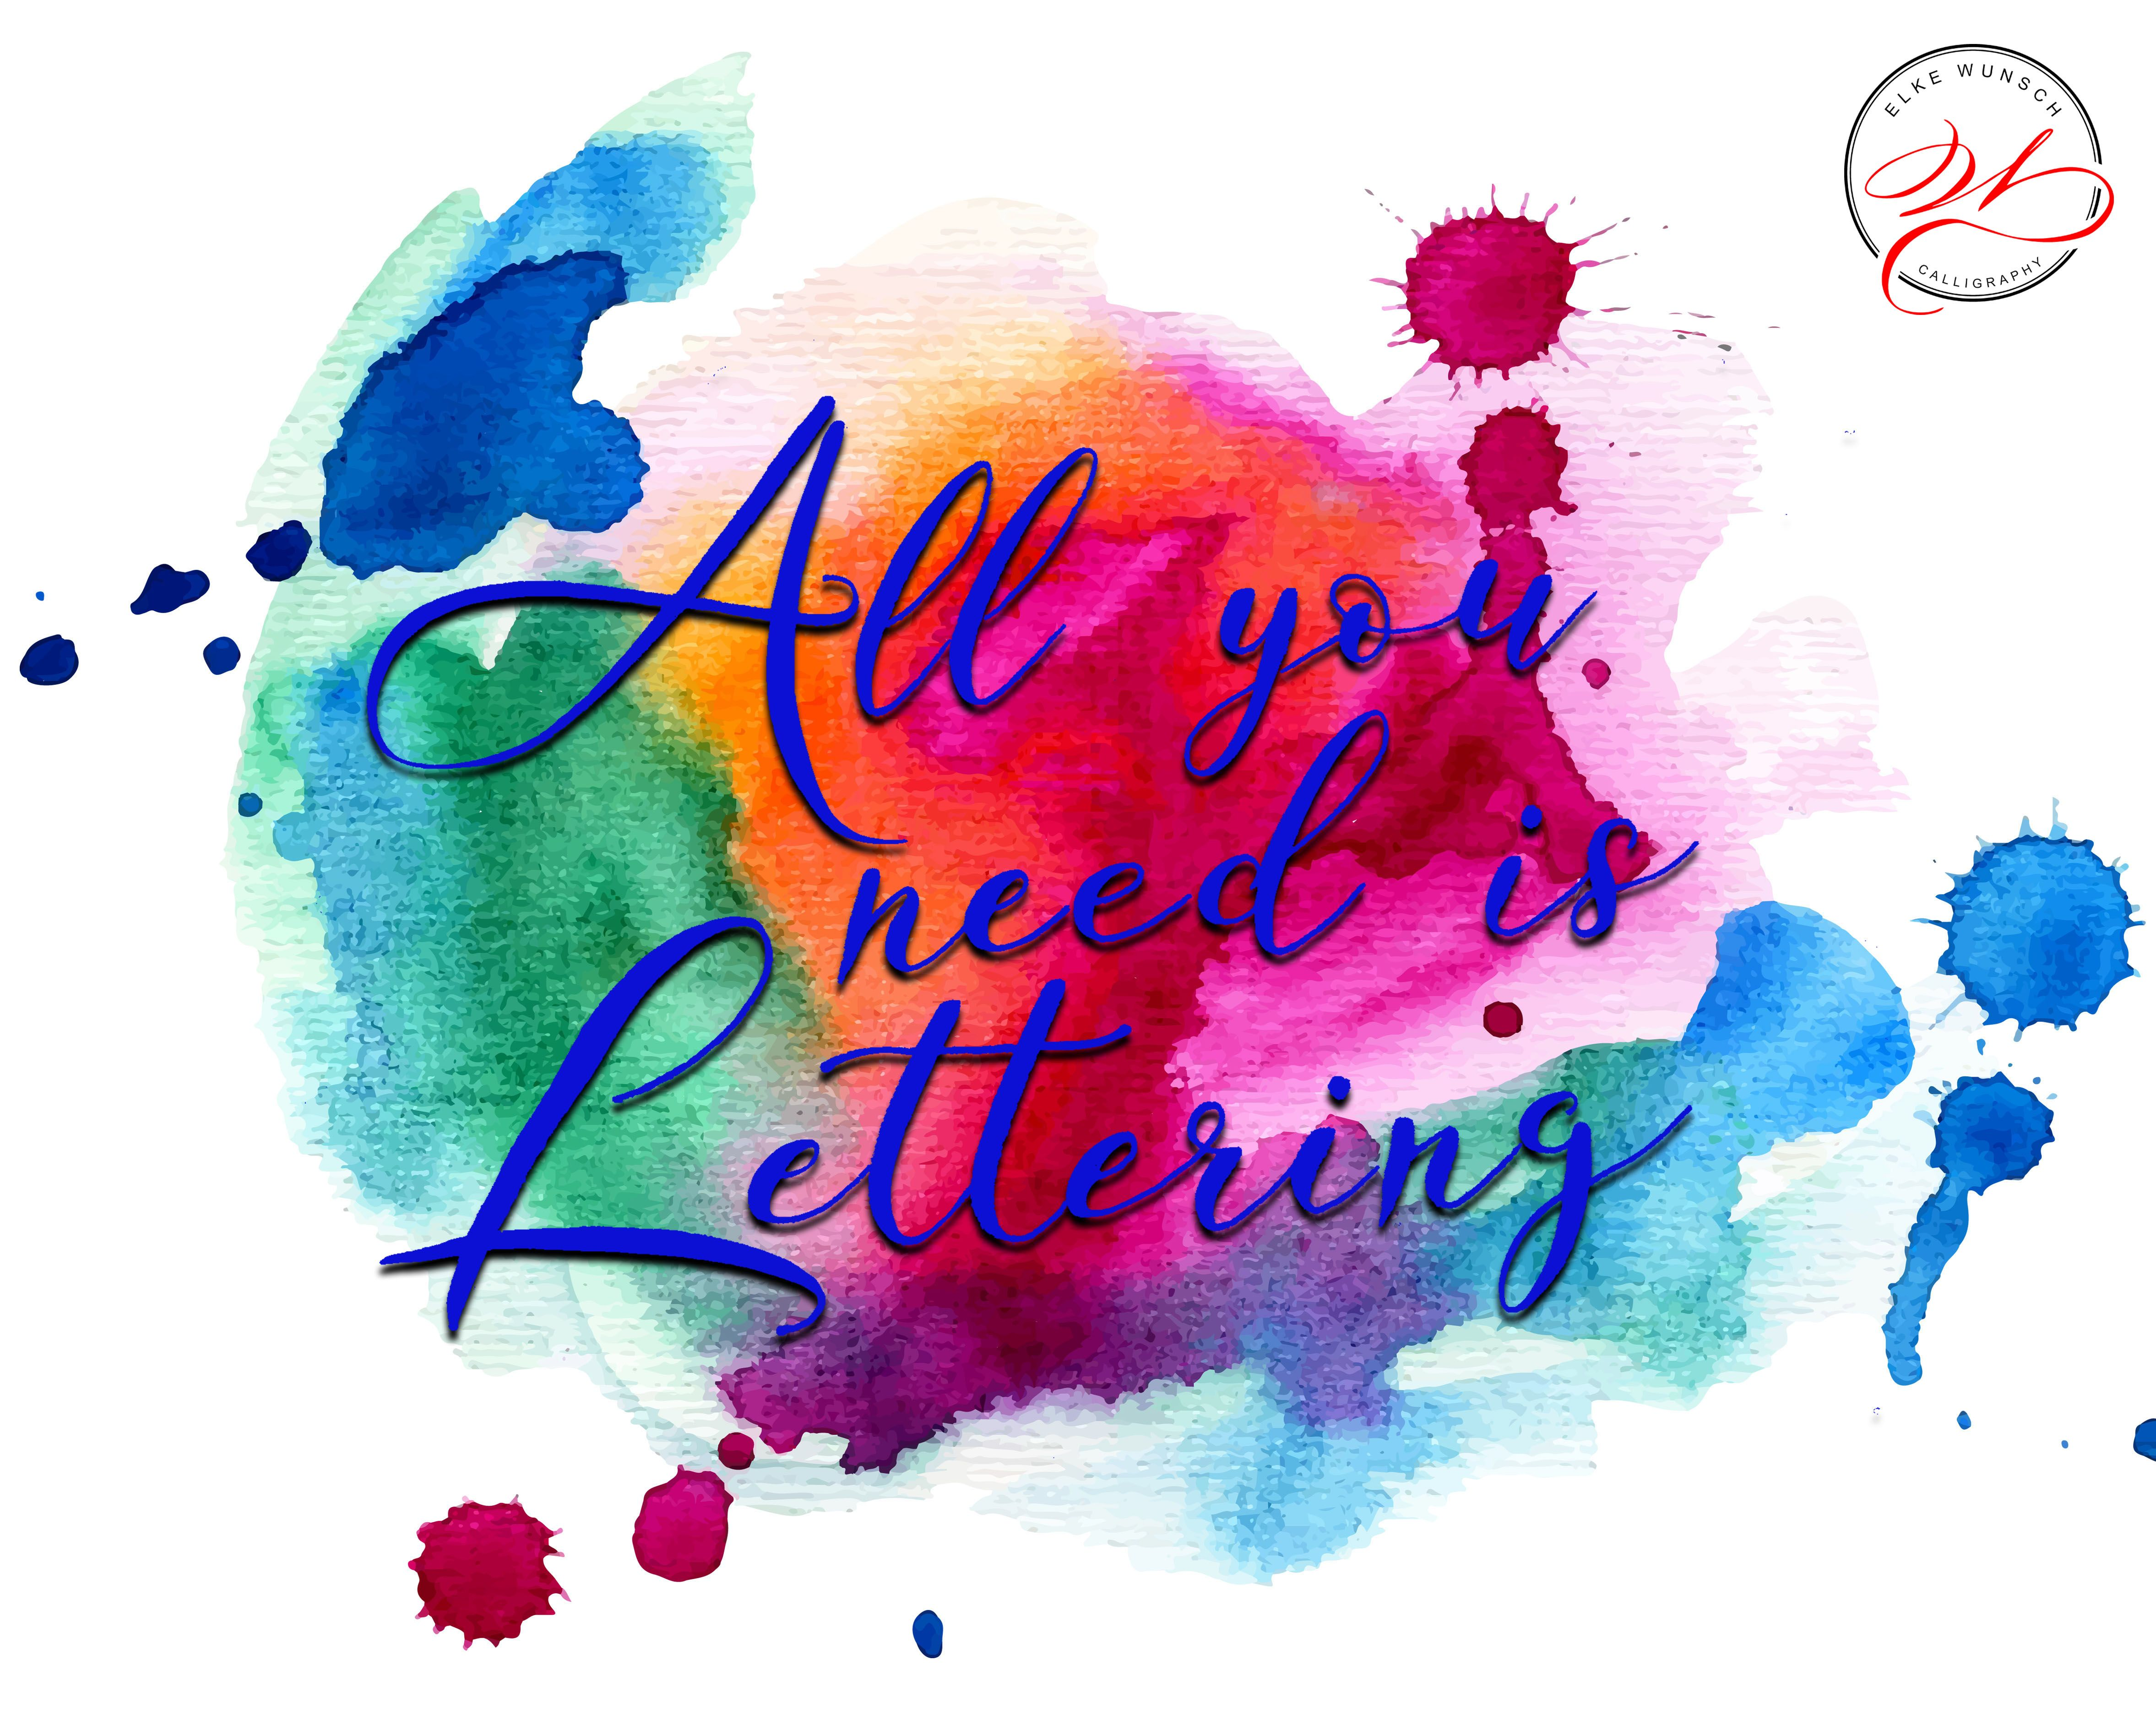 All You Need Is Handlettering Handlettering And Calligraphy Elke Wunsch